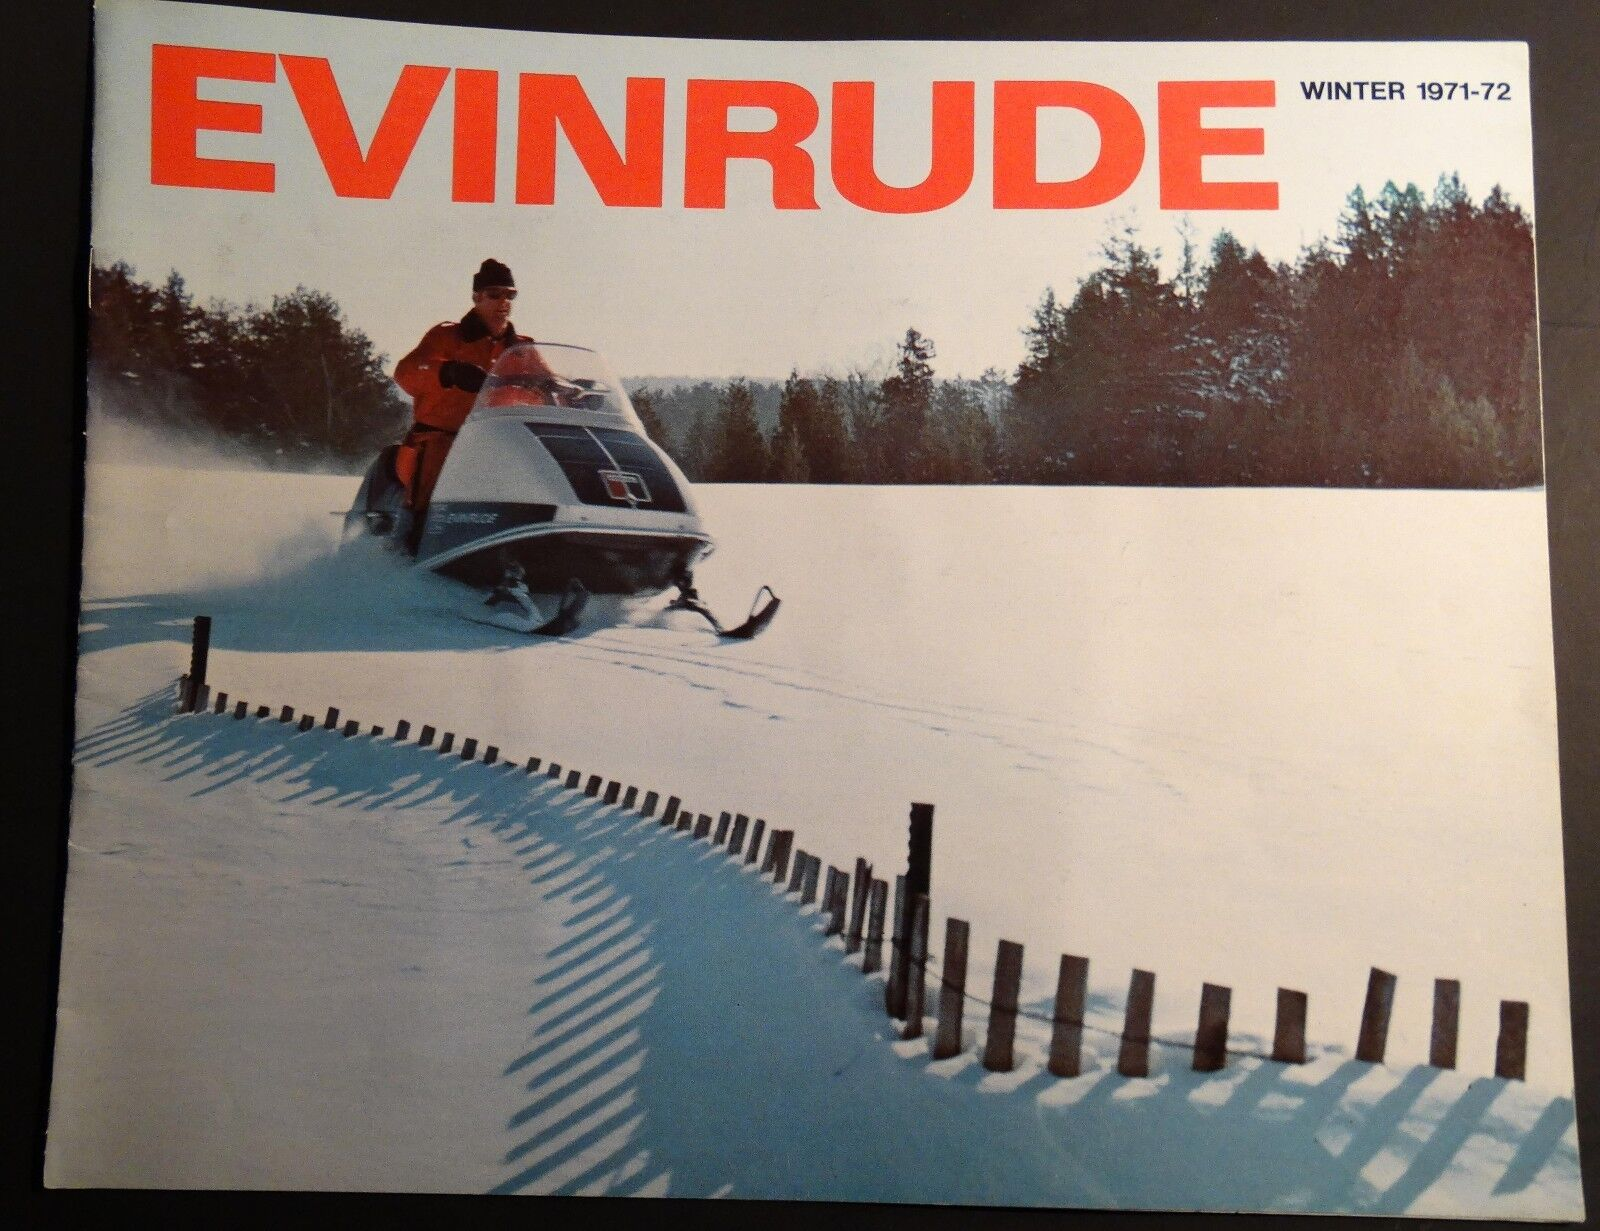 1972 EVINRUDE FULL LINE SNOWMOBILE SALES BROCHURE 12 PAGES  (260)